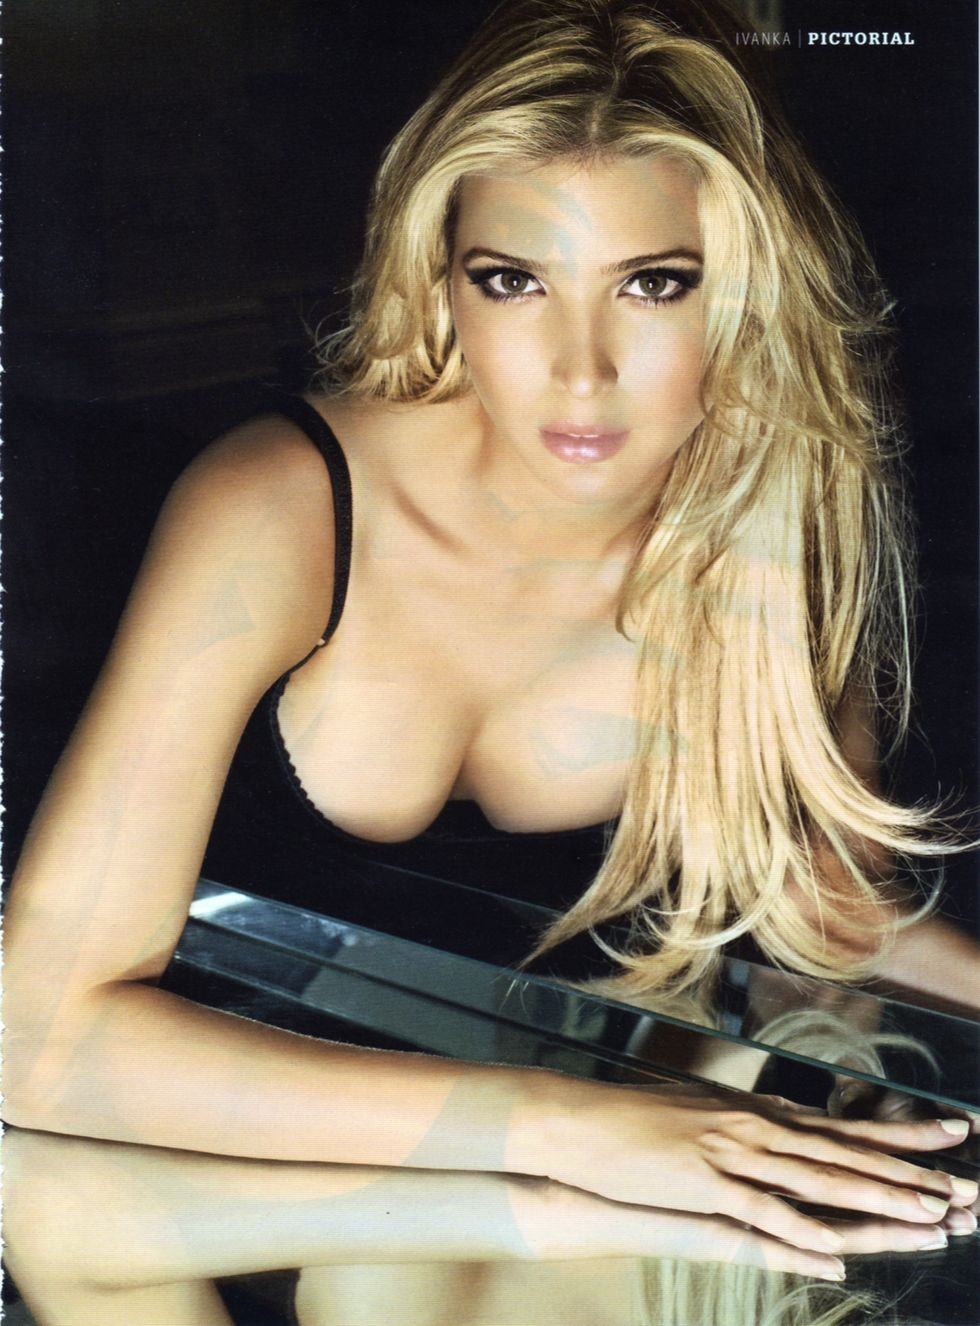 ivanka trump nude page pictures naked oops topless